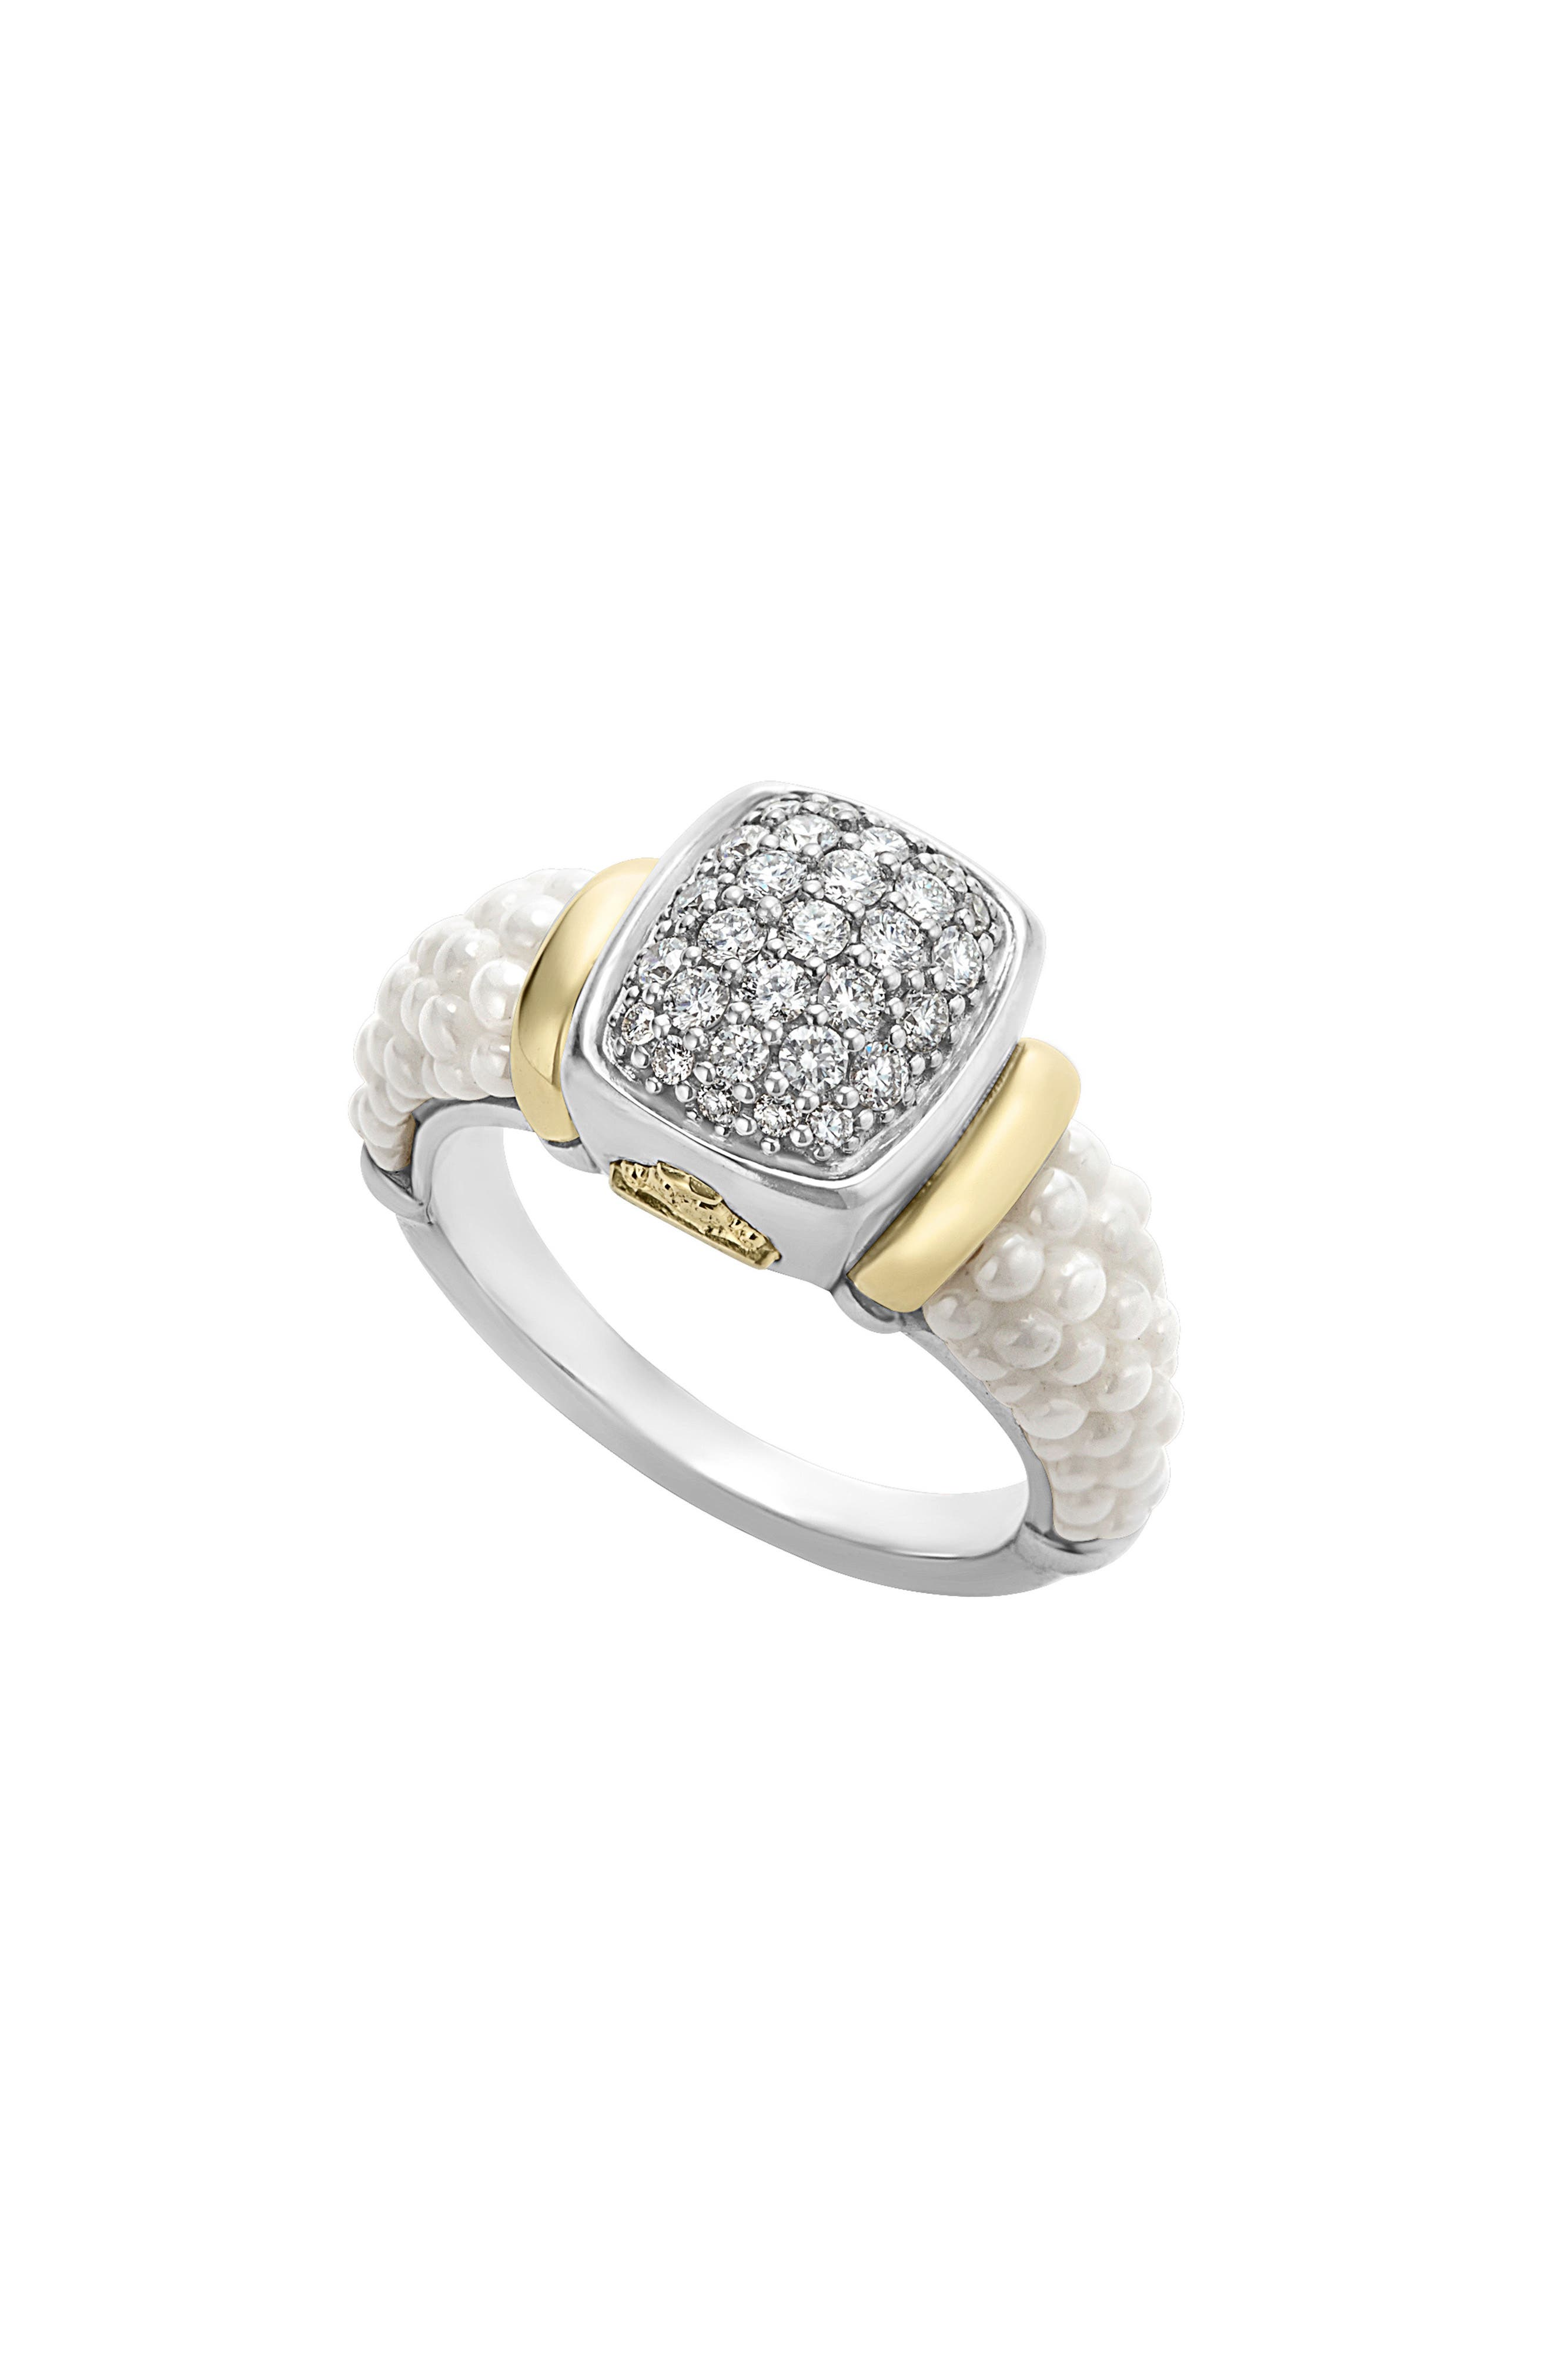 Alternate Image 1 Selected - LAGOS 'Caviar' Diamond Ring